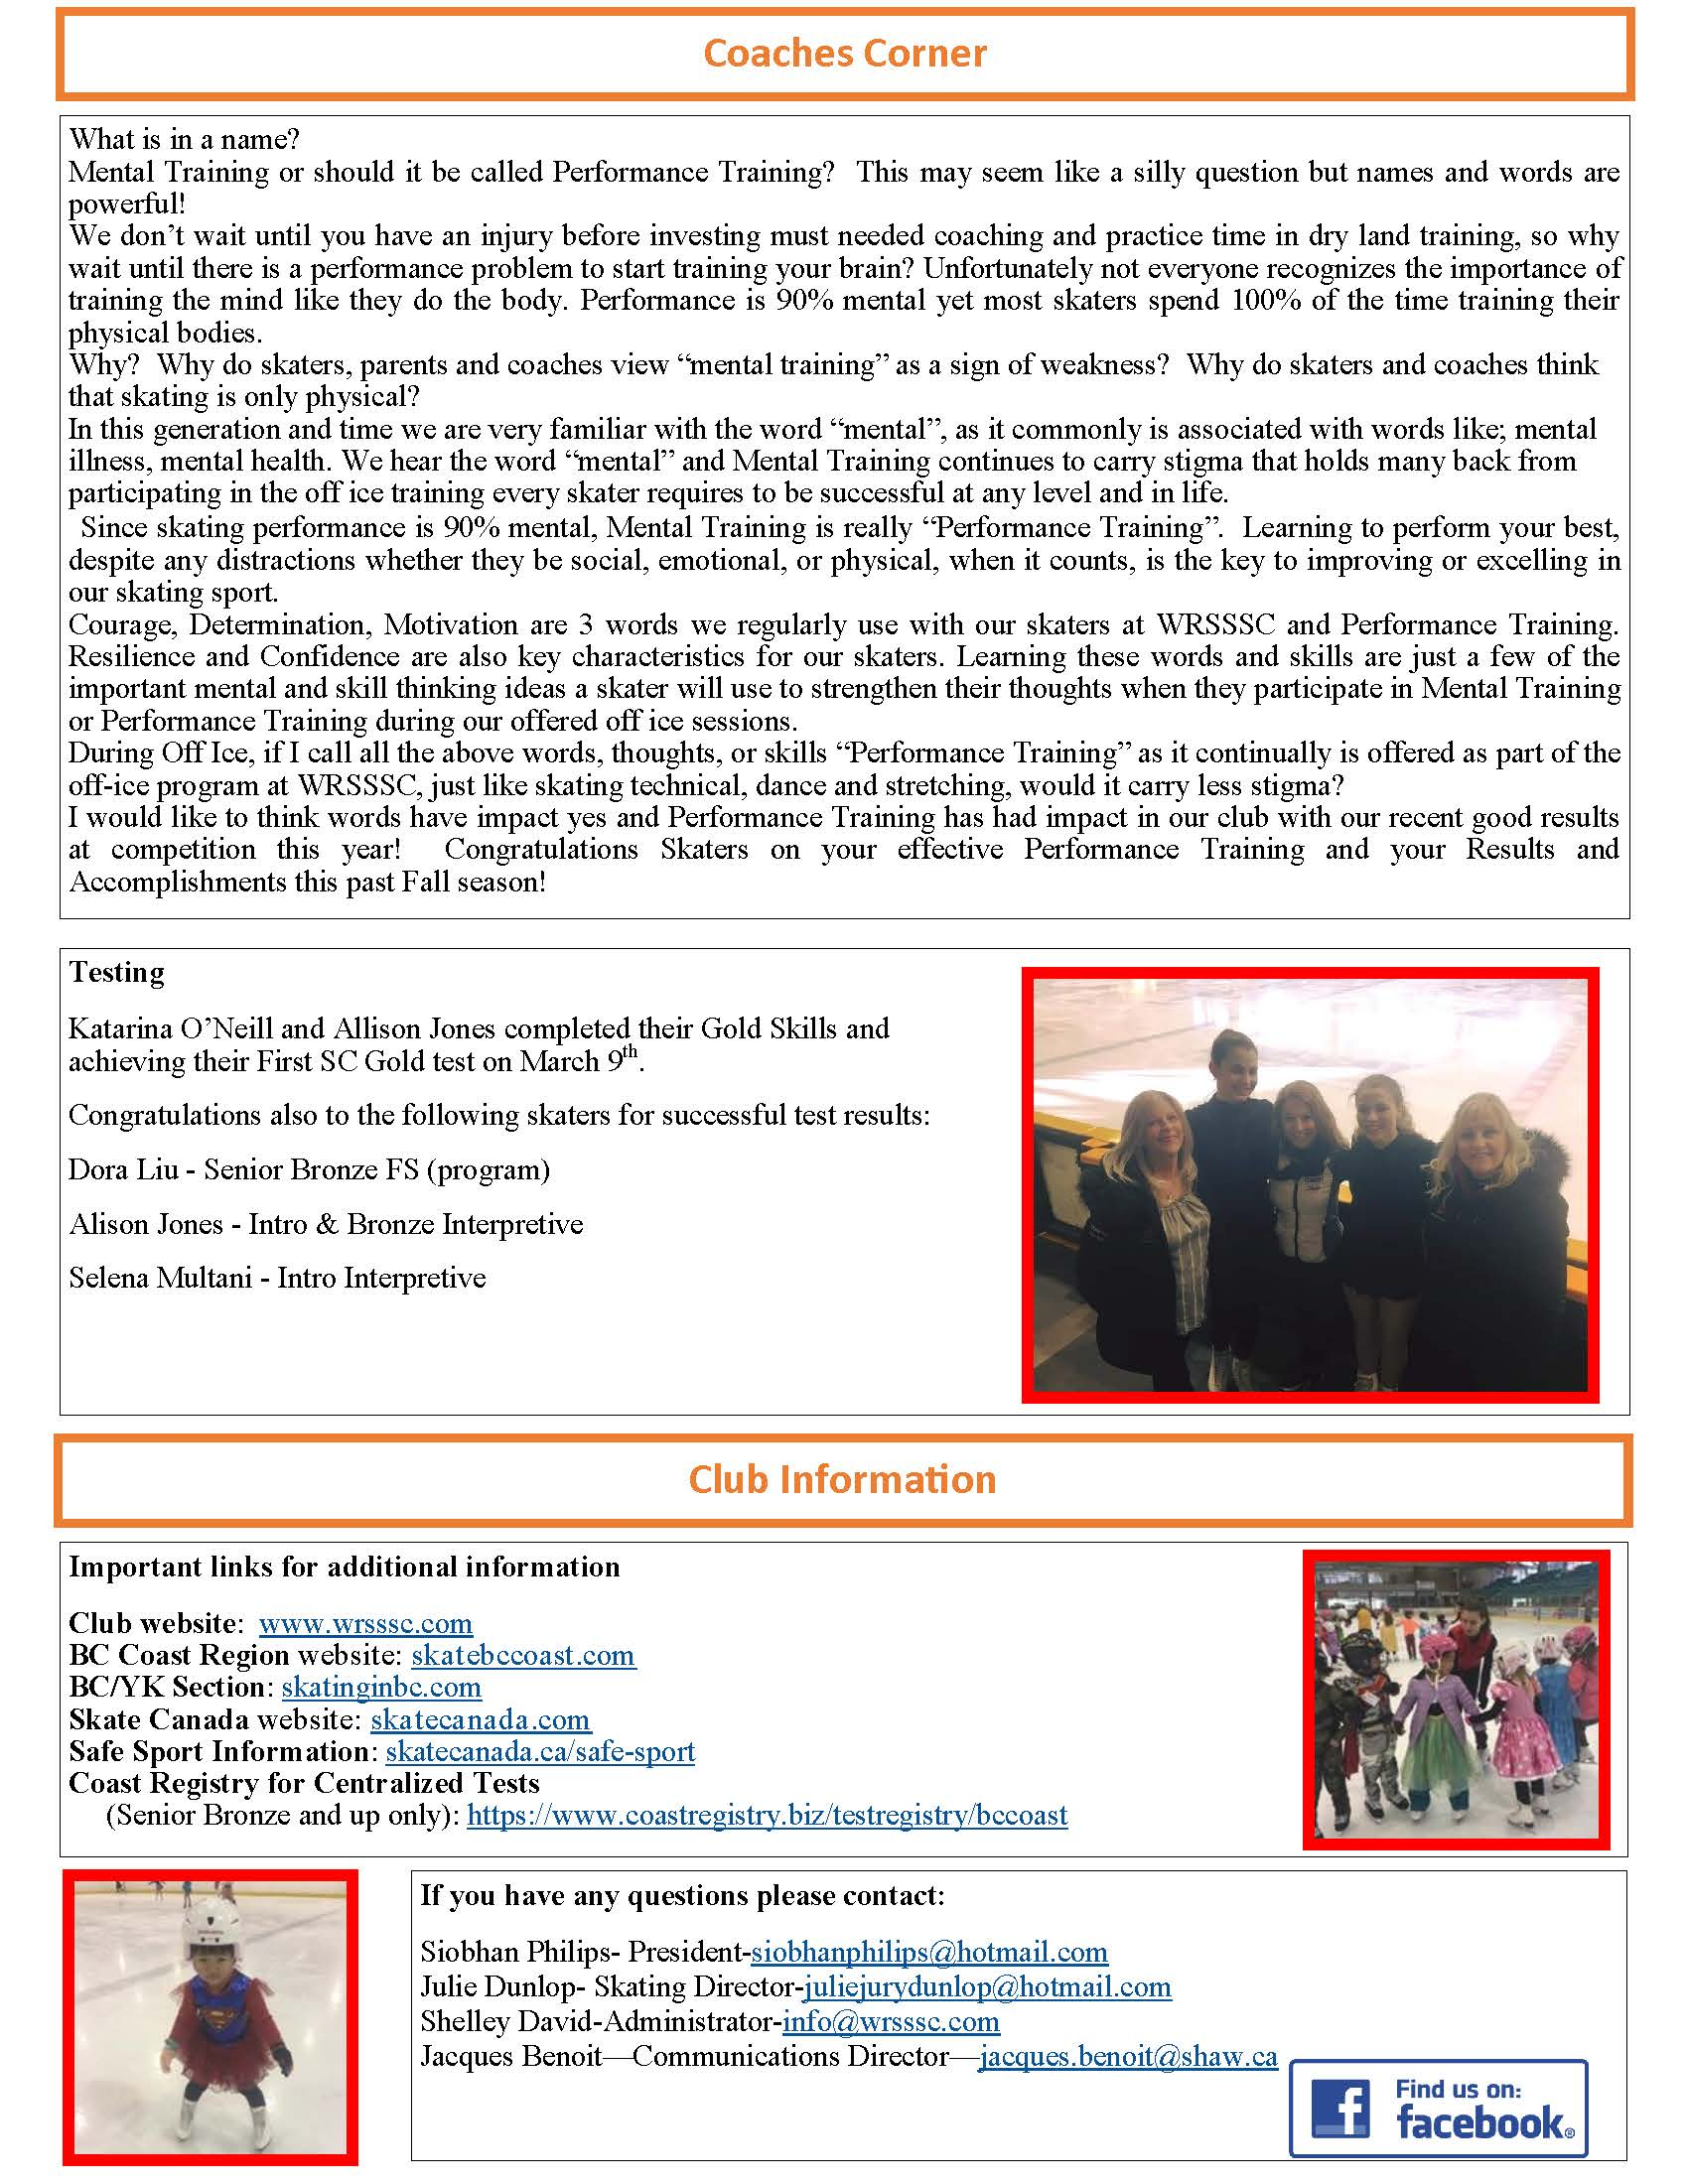 WRSSSC Newsletter March-April 2019_Page_3.jpg